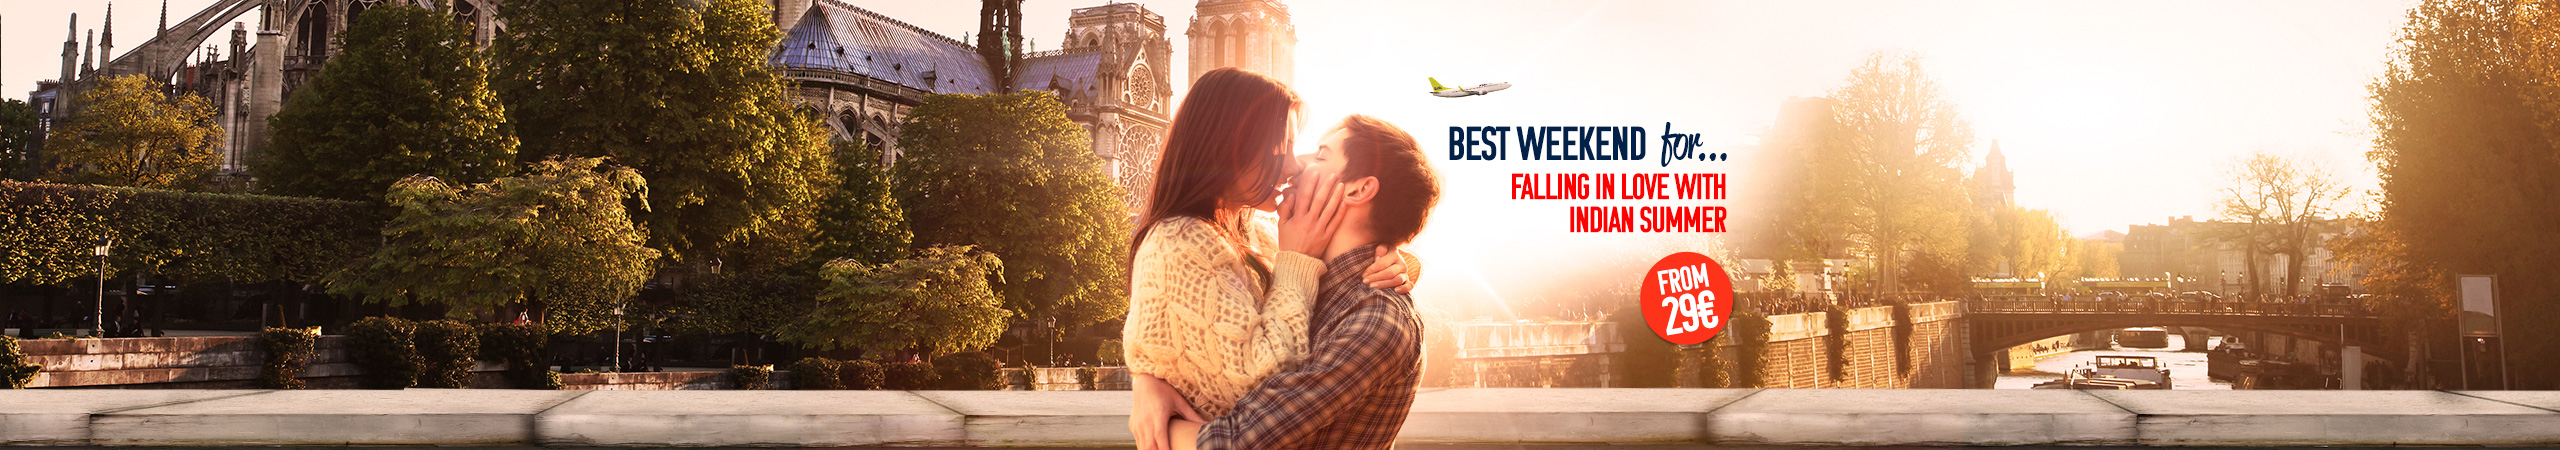 Fall in love with the Indian summer in one of the top European cities. Just book your ticket now from 29 EUR and spend the best part of the year travelling.